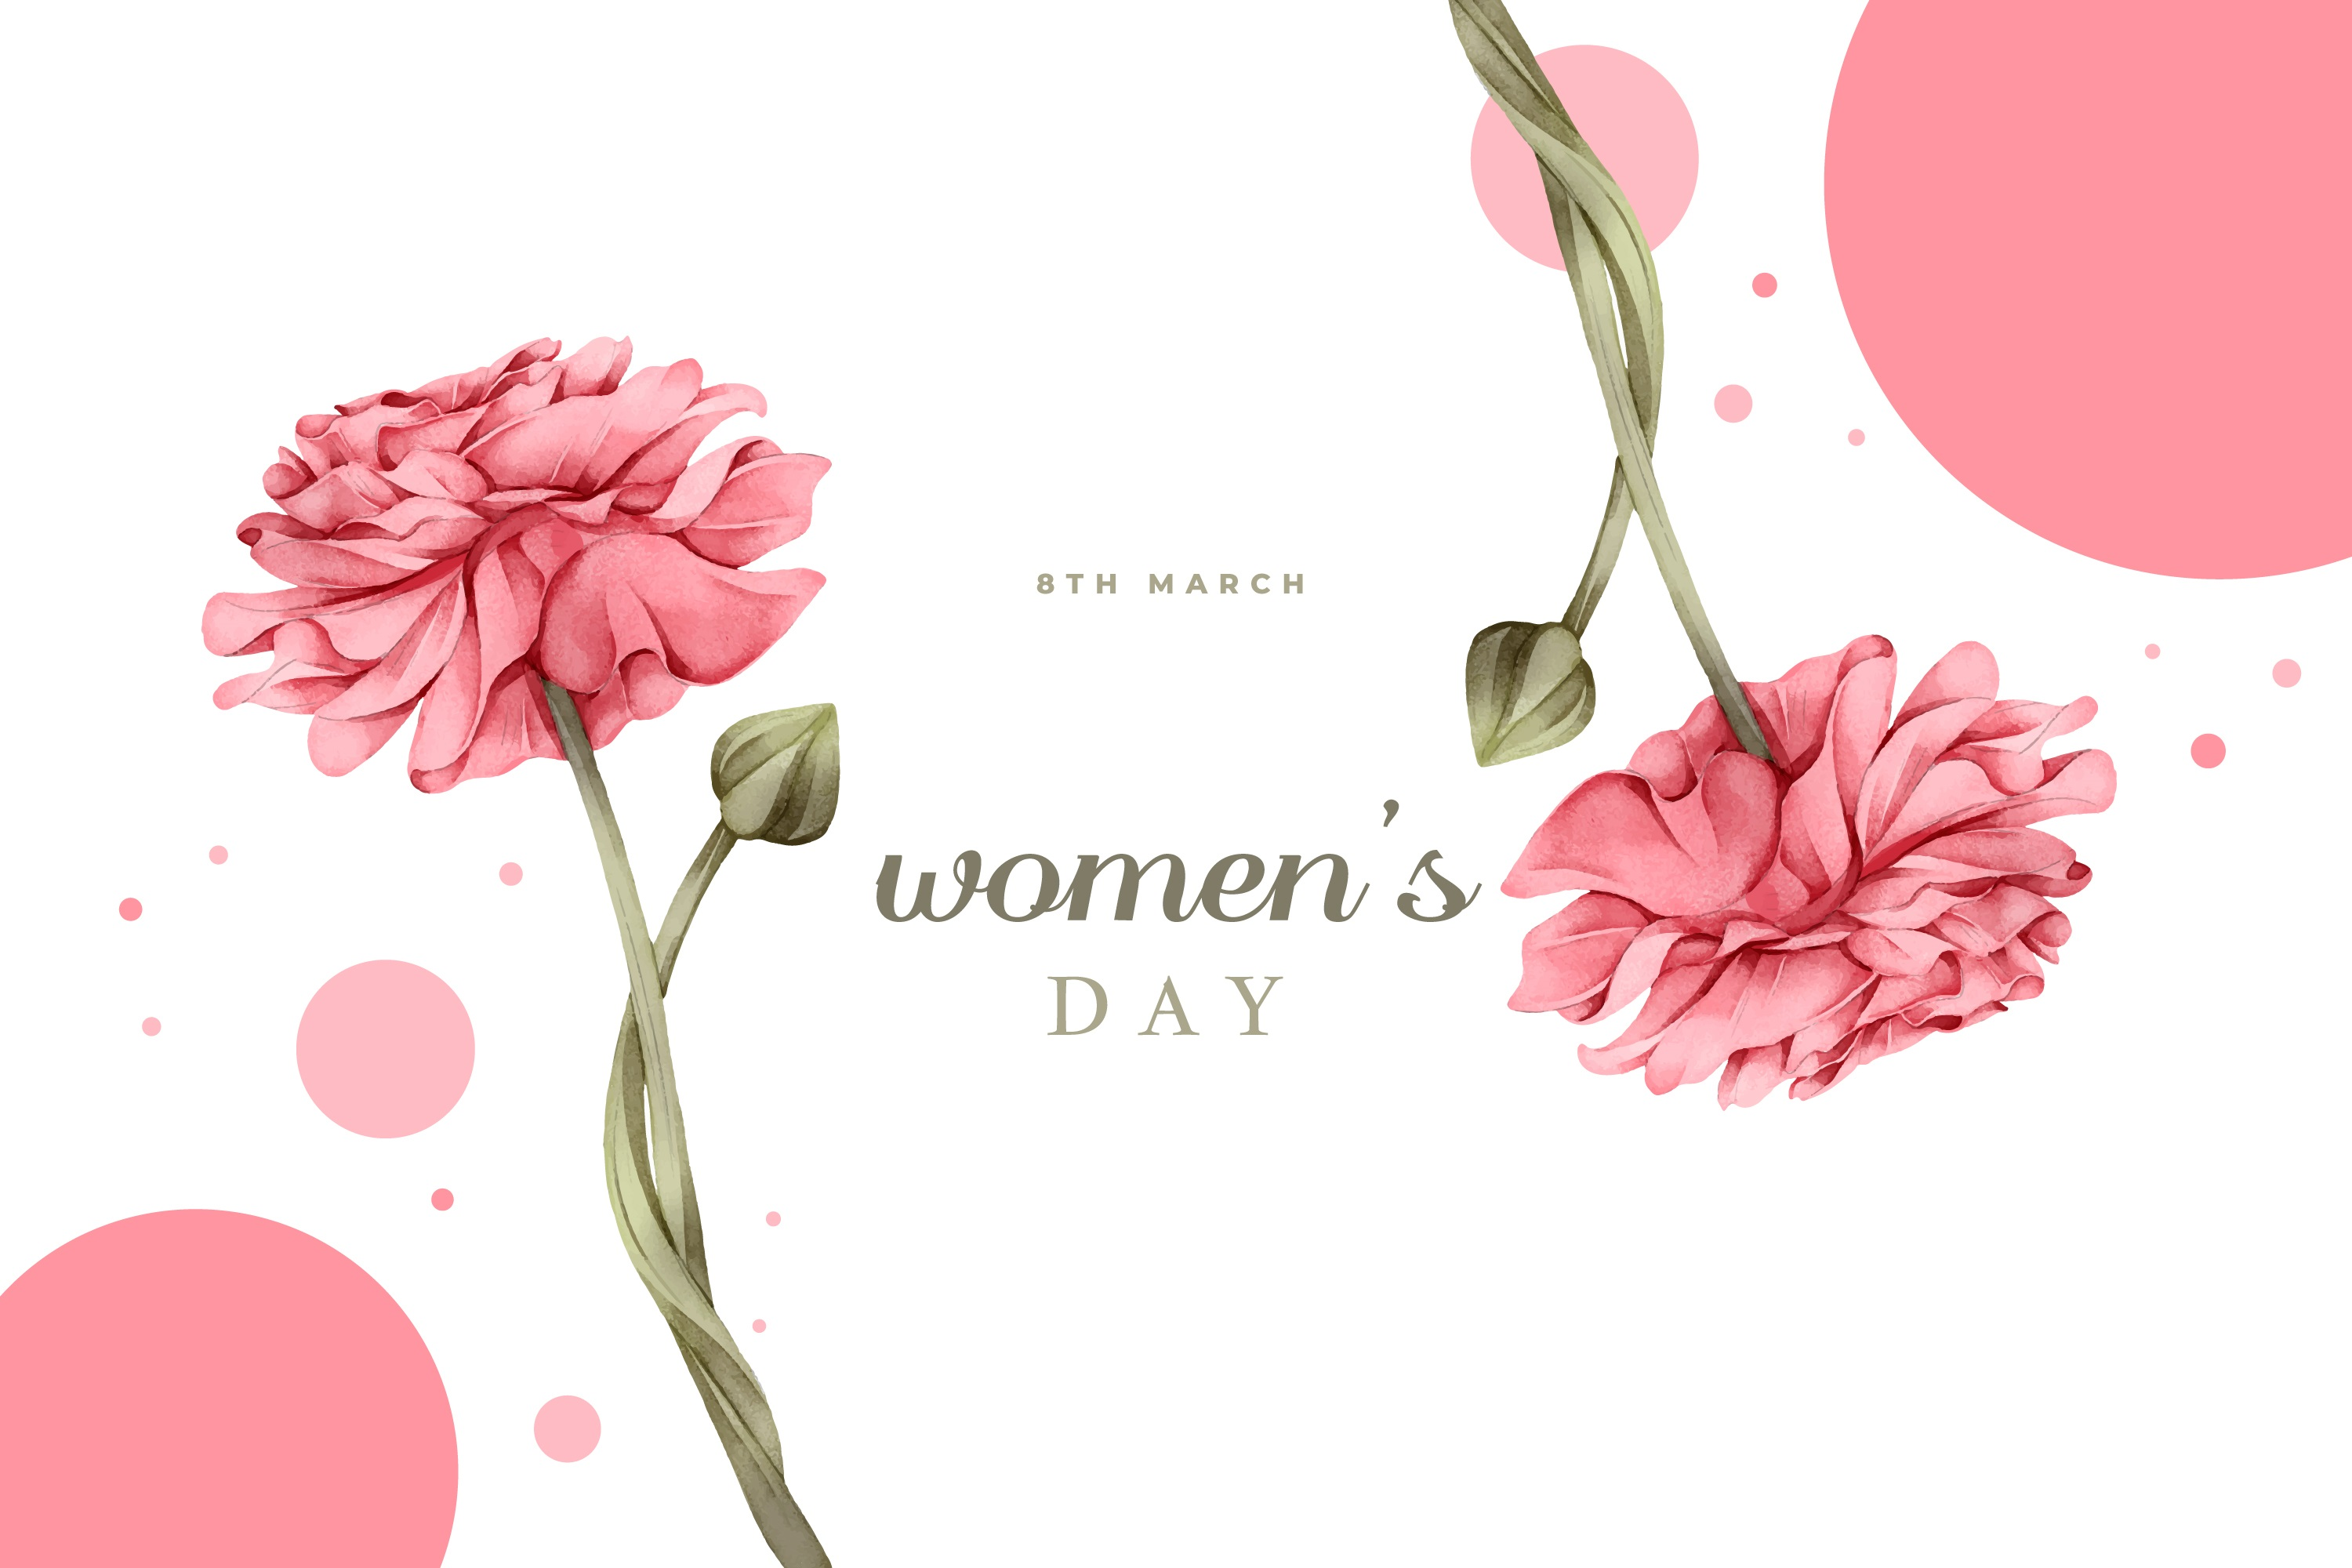 Woman's Day March 8th